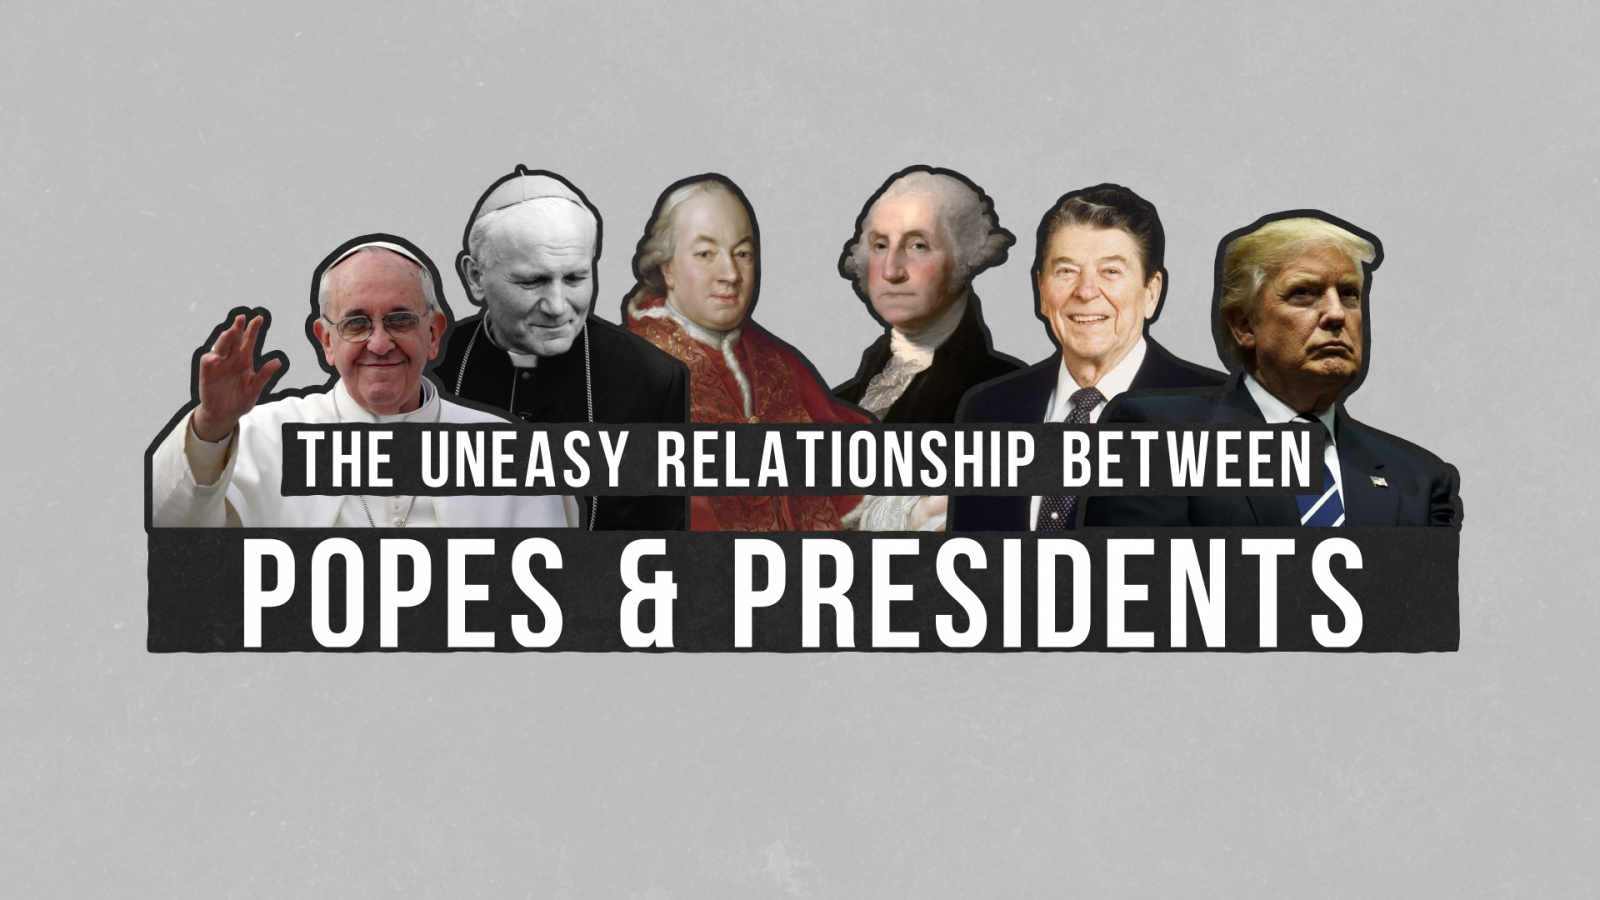 the-uneasy-relationship-between-popes-and-presidents